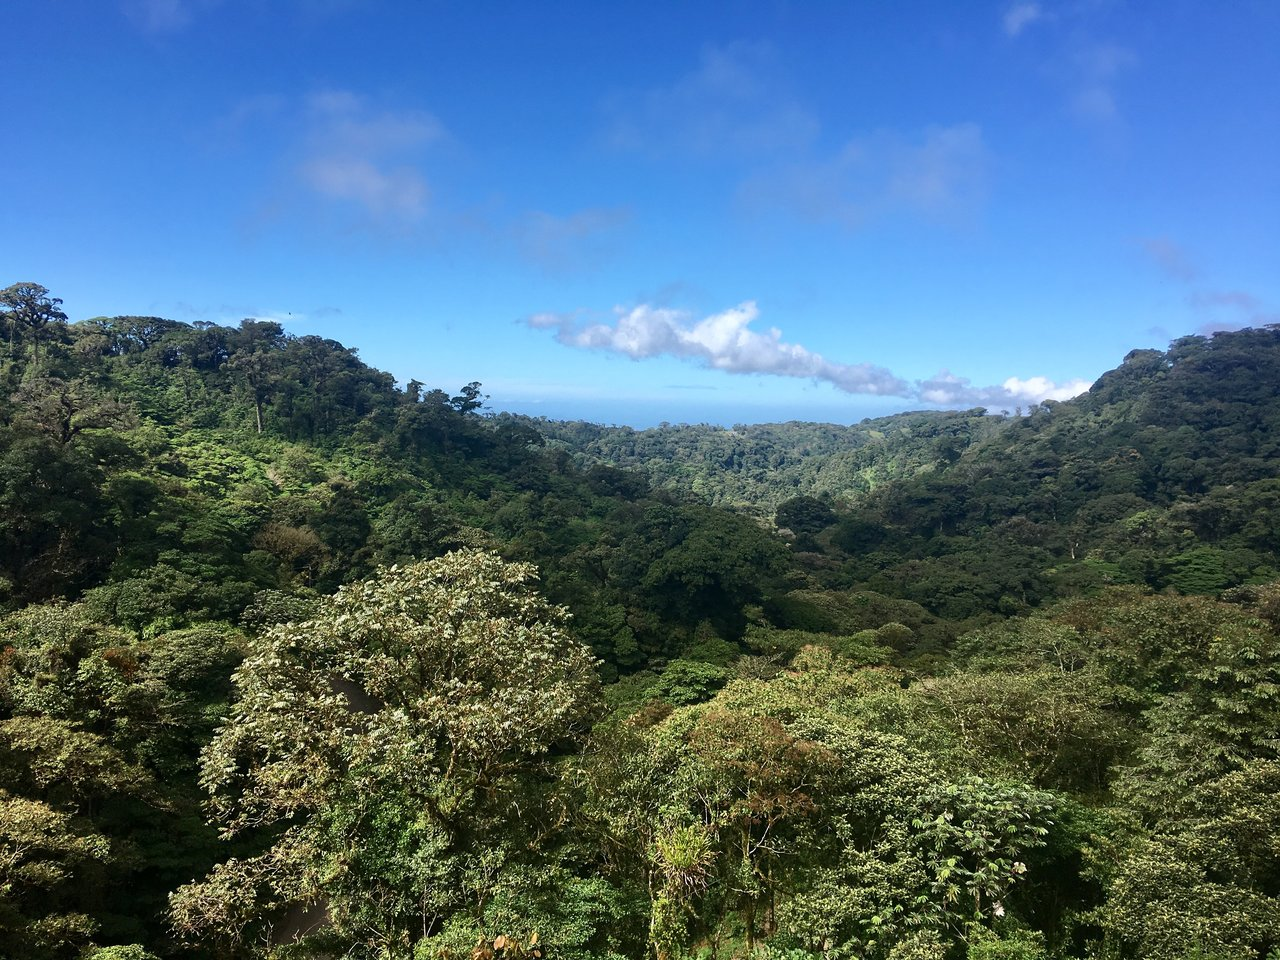 View of the Pacific Ocean from the Monteverde Cloud Forest  | Photo taken by Rachel H